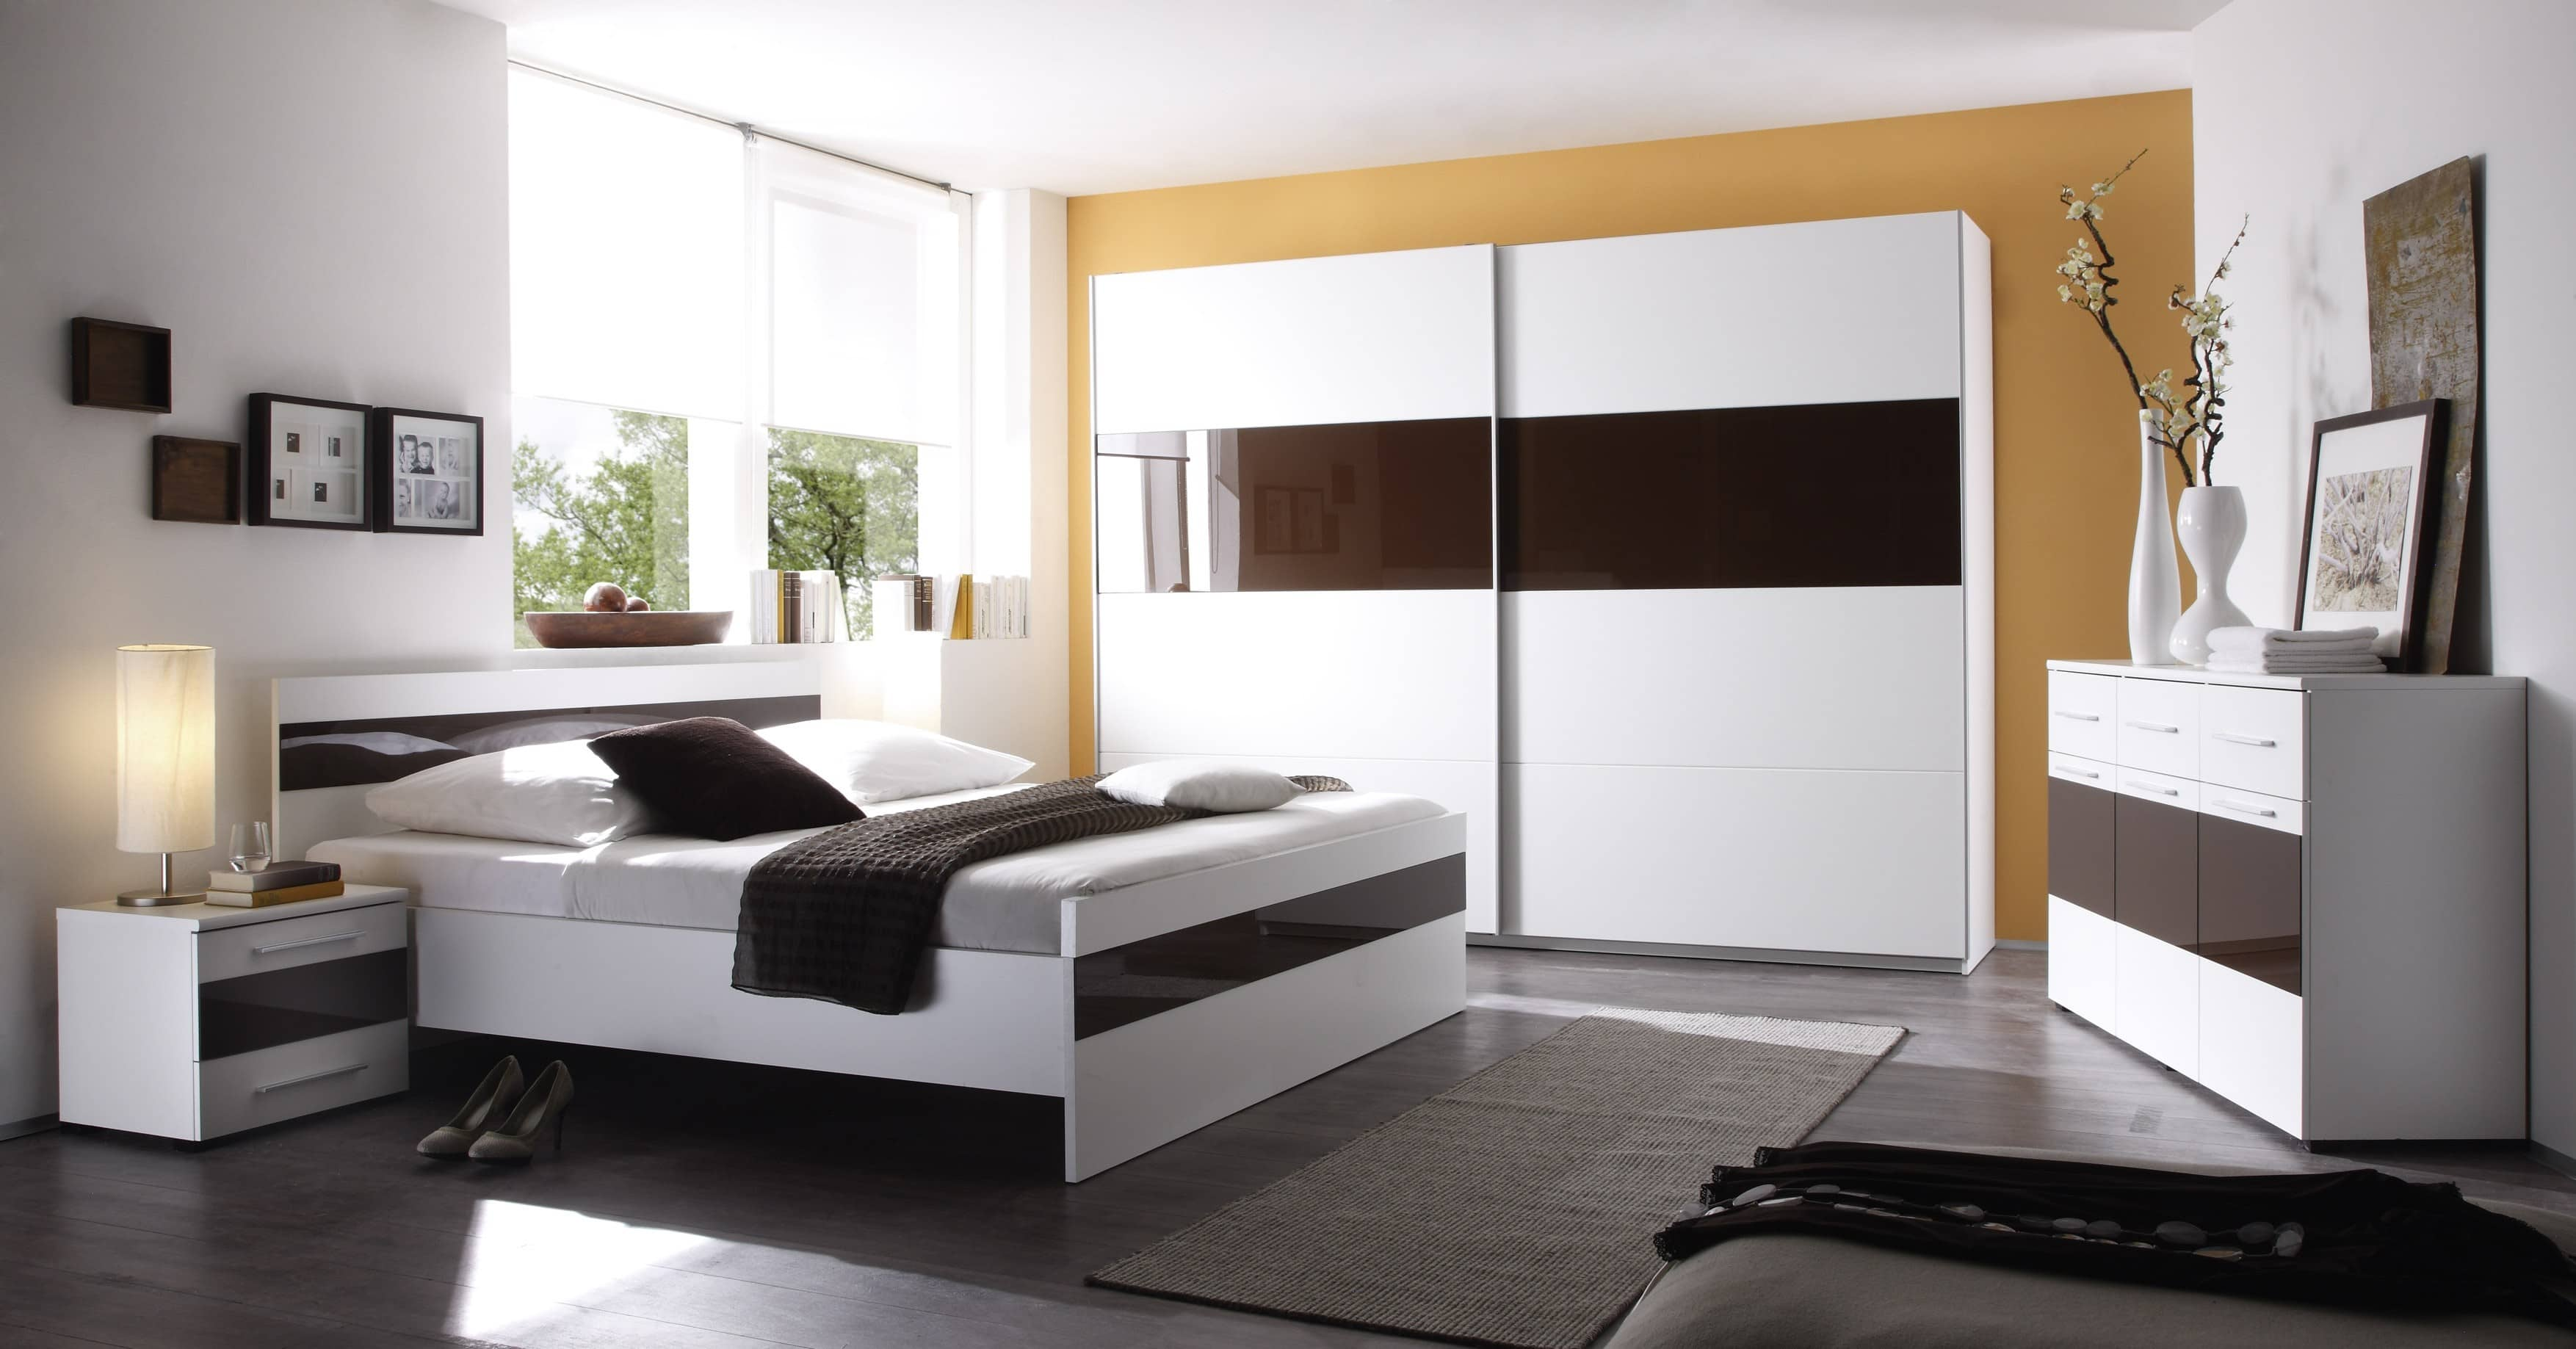 deco chambre mansardee adulte avec des id es int ressantes pour la conception de. Black Bedroom Furniture Sets. Home Design Ideas